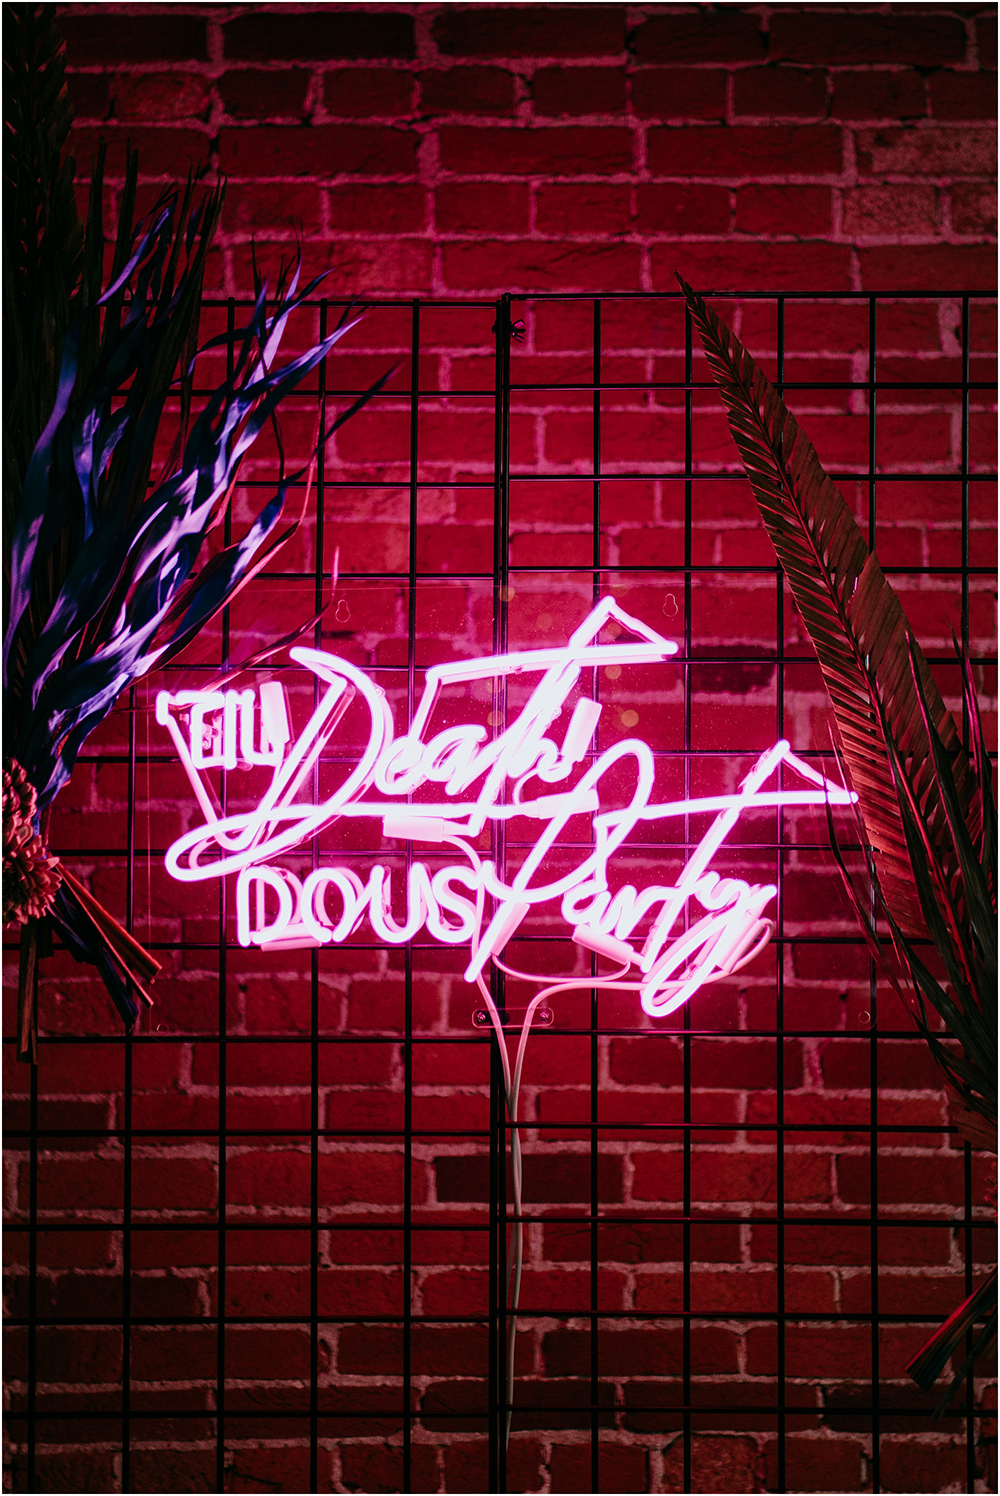 The bright neon sign put it all together bringing a party vibe to the space